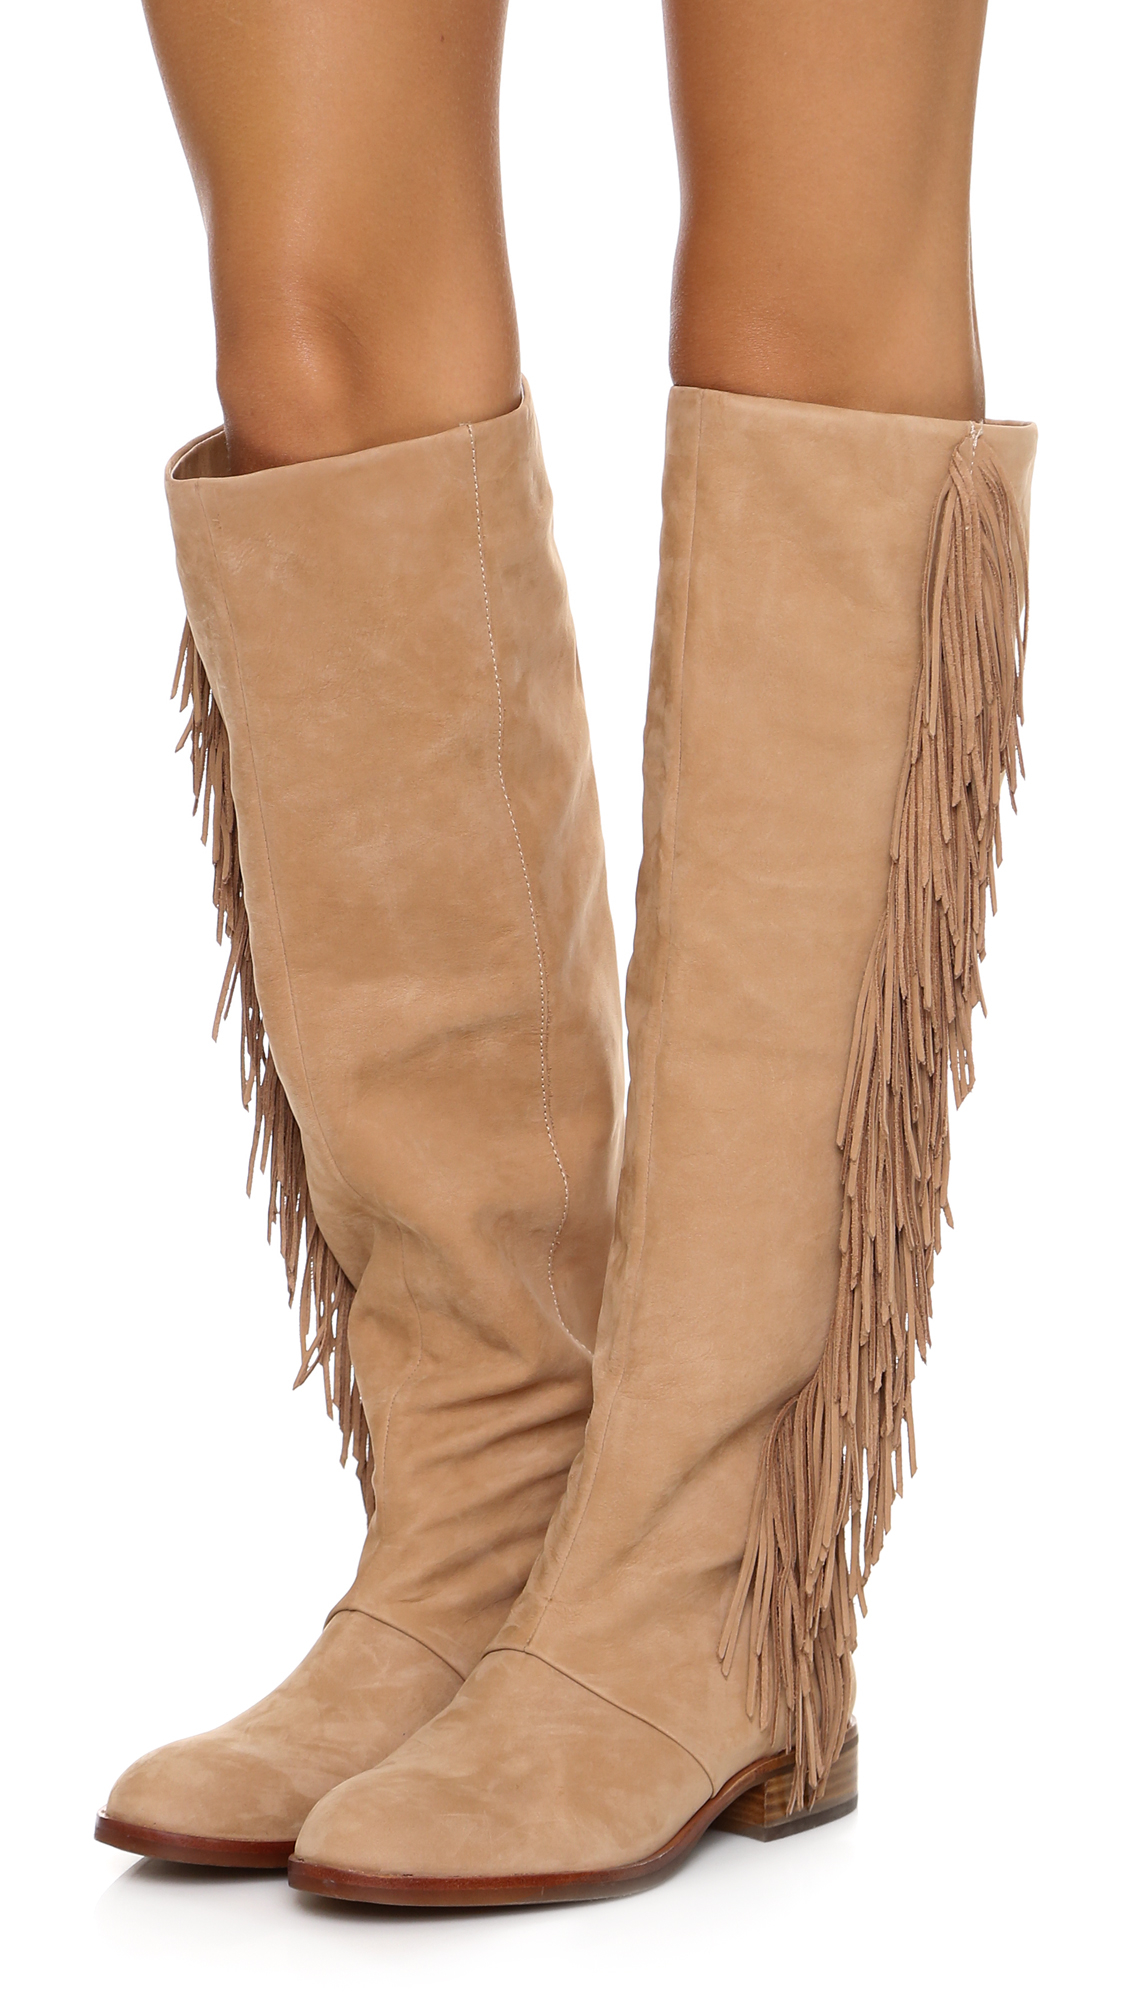 Sam edelman Josephine Fringe Boots in Brown | Lyst